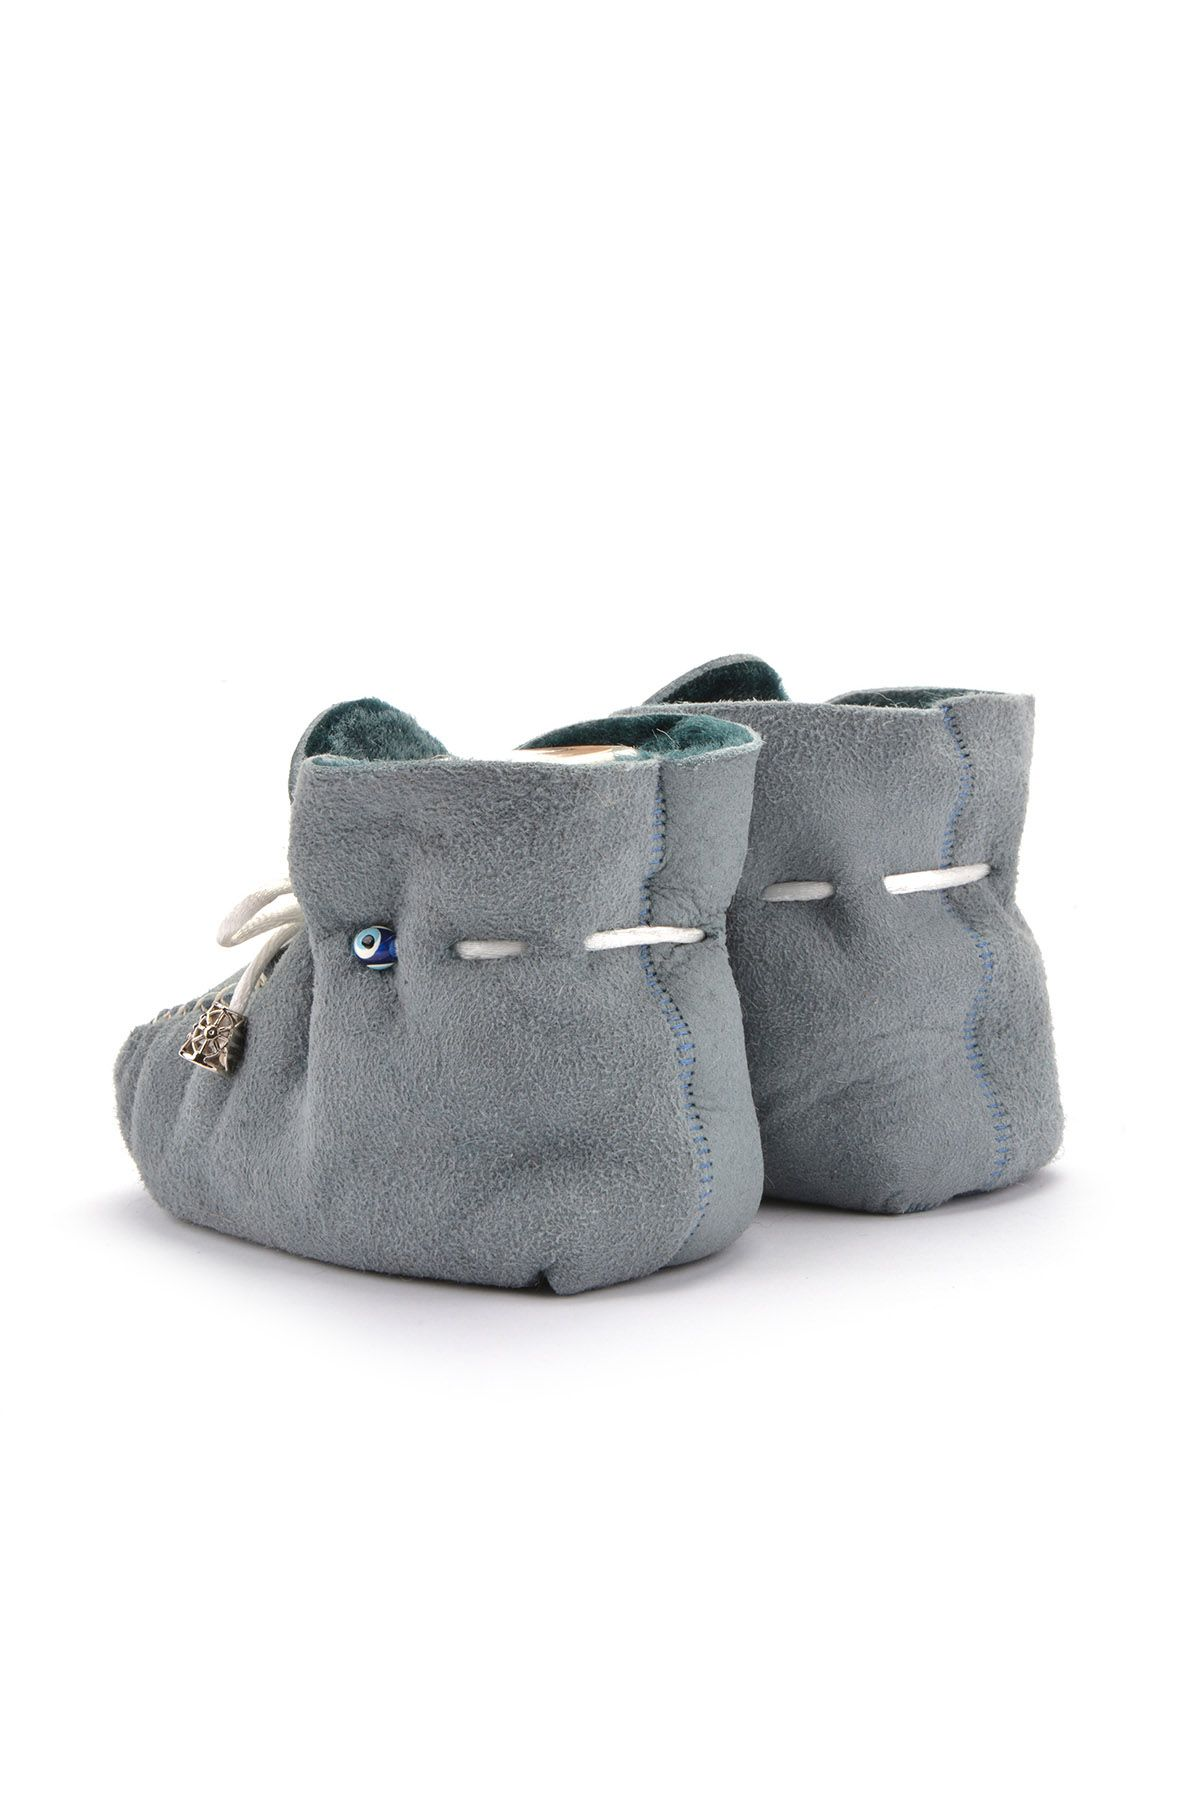 Pegia Laced Kids Booties From Genuine Fur Anthracite-colored